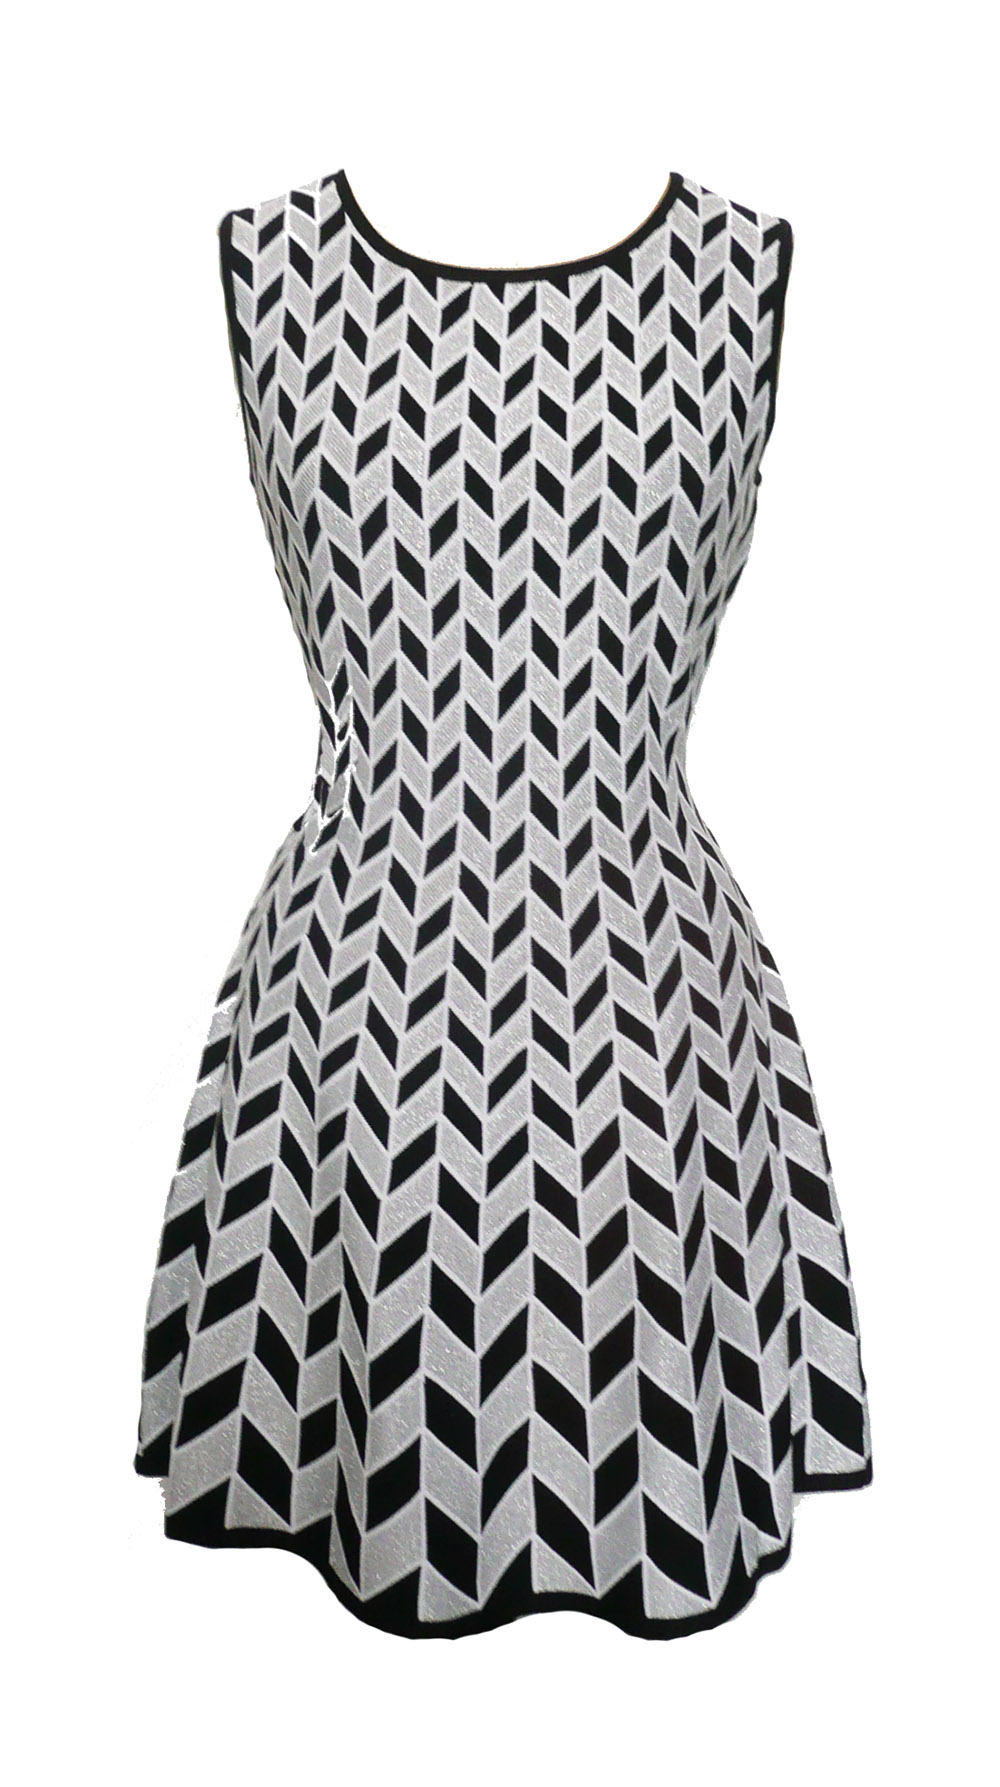 dress blk slv chevron.jpg